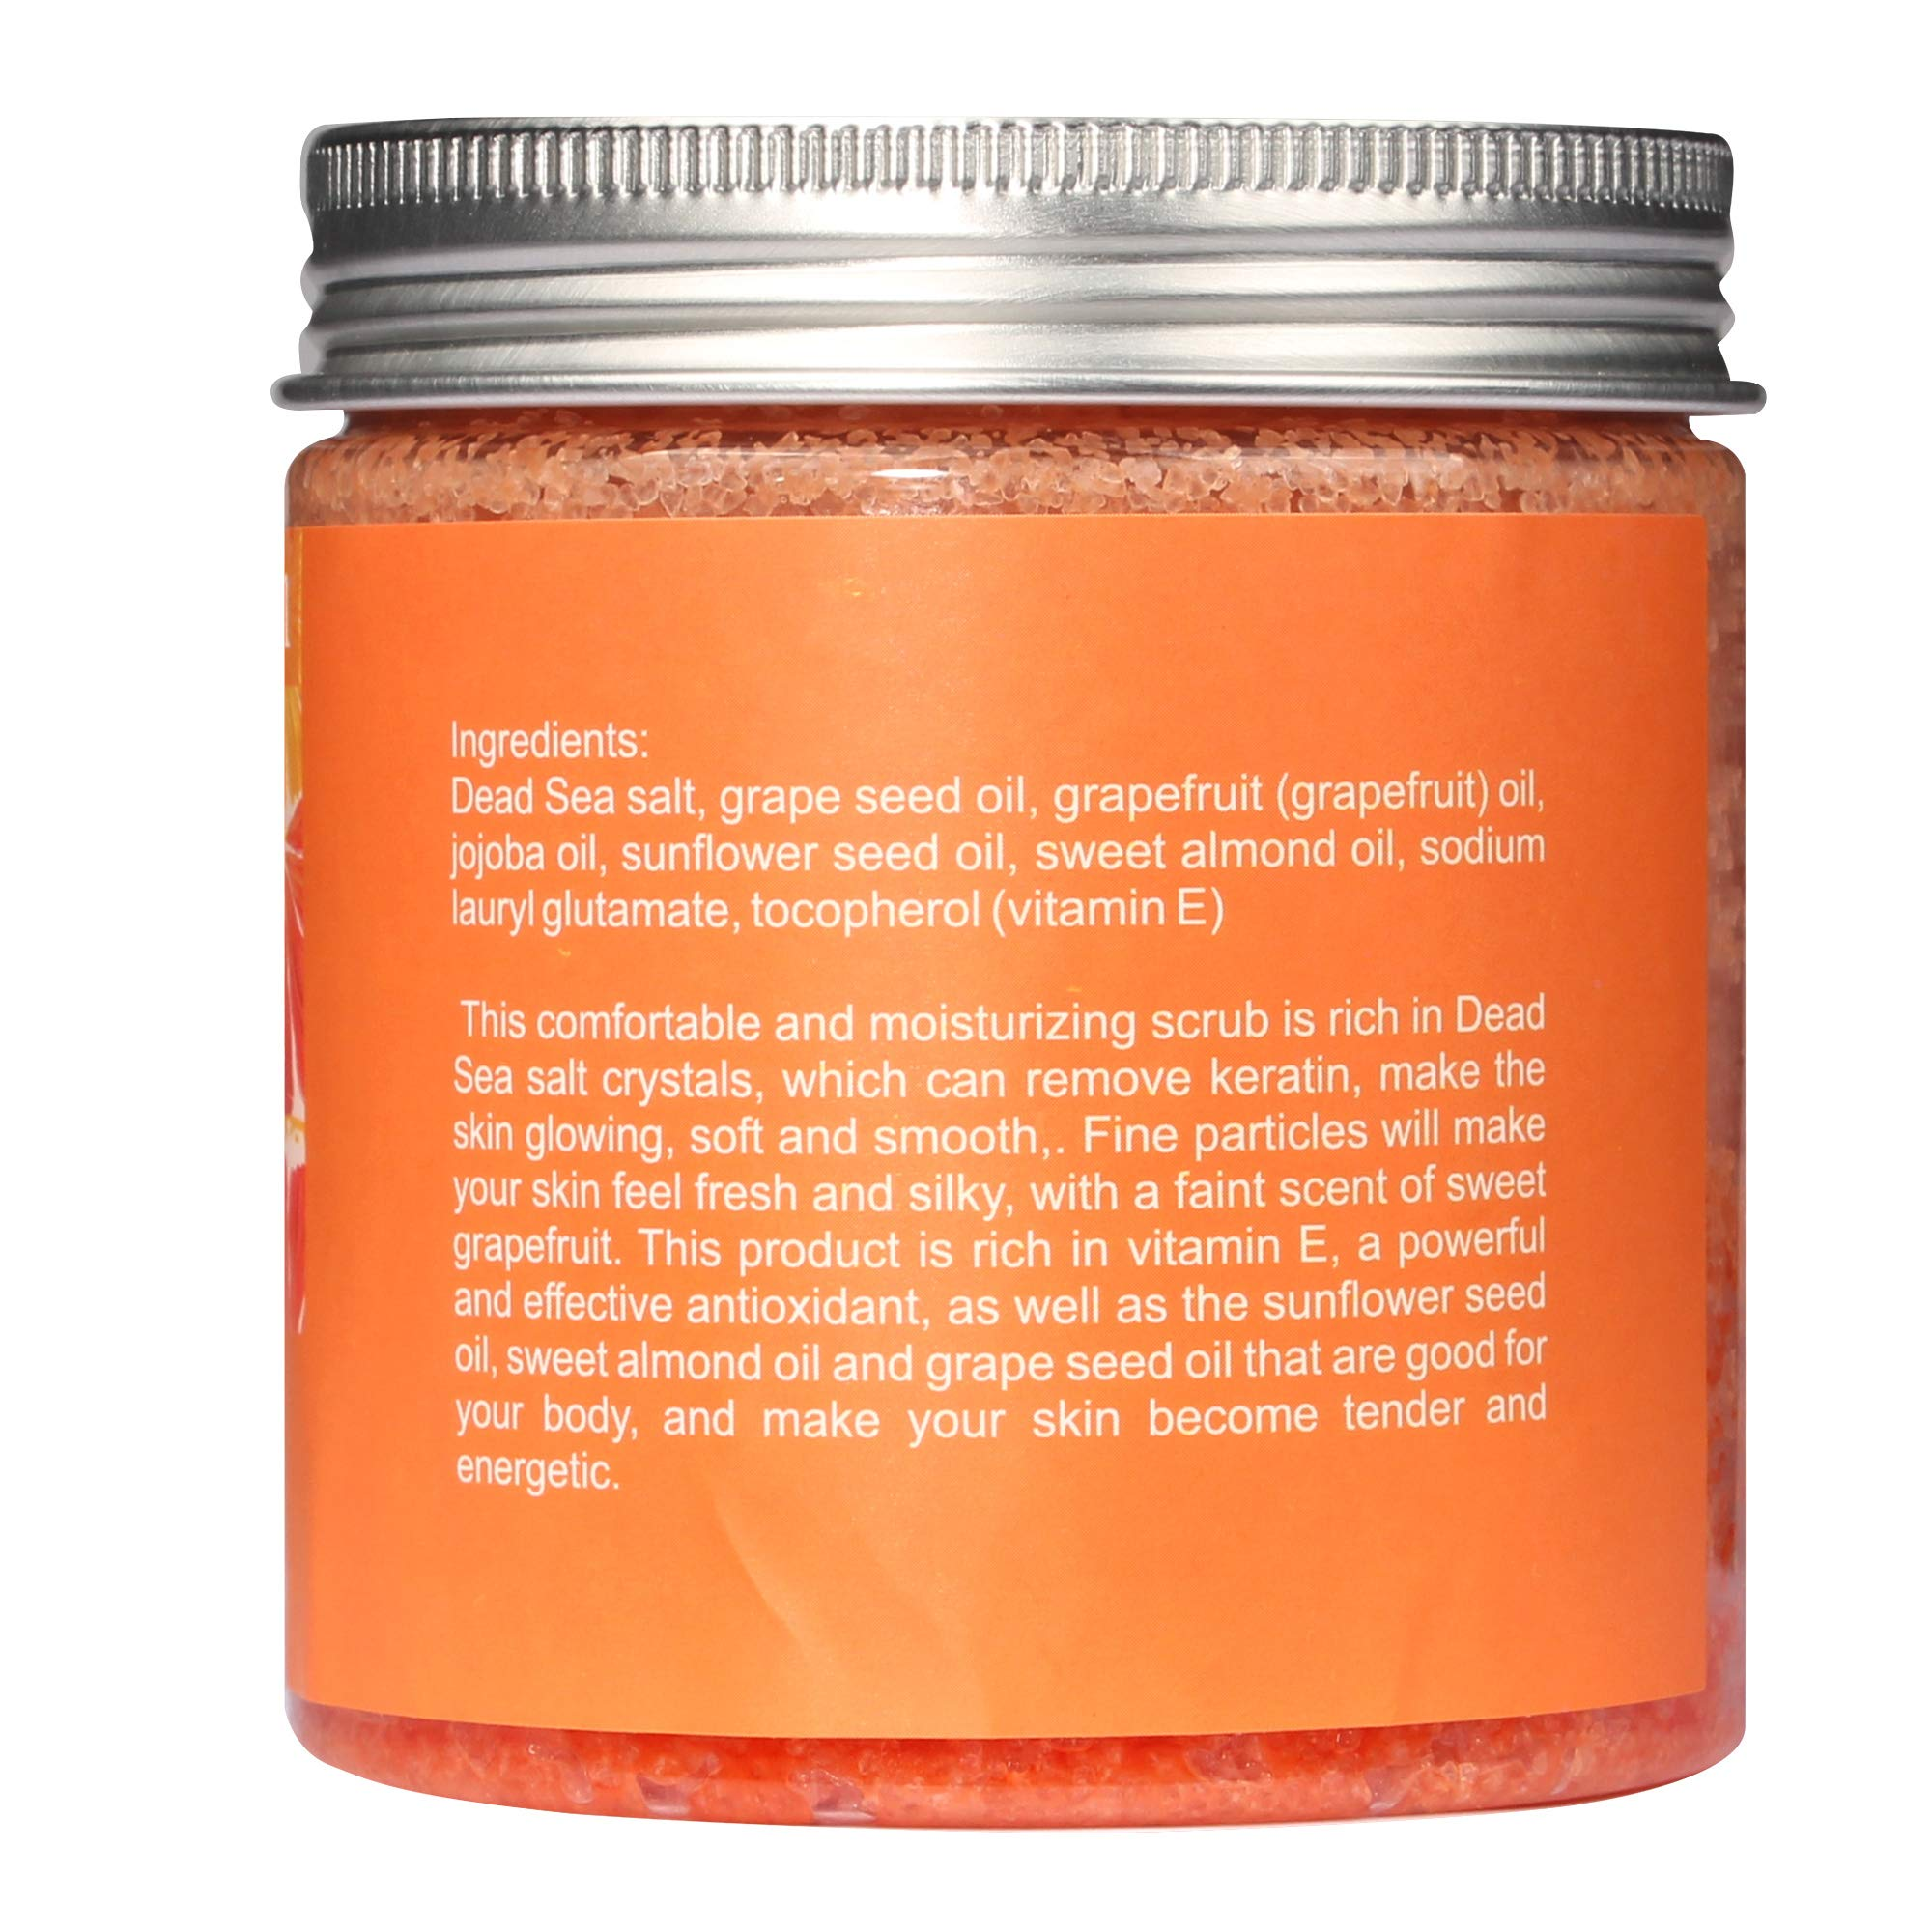 Organic Exfoliating Body Scrub with Essential Oil, Natural Scrub to Exfoliate and Moisturize Skin